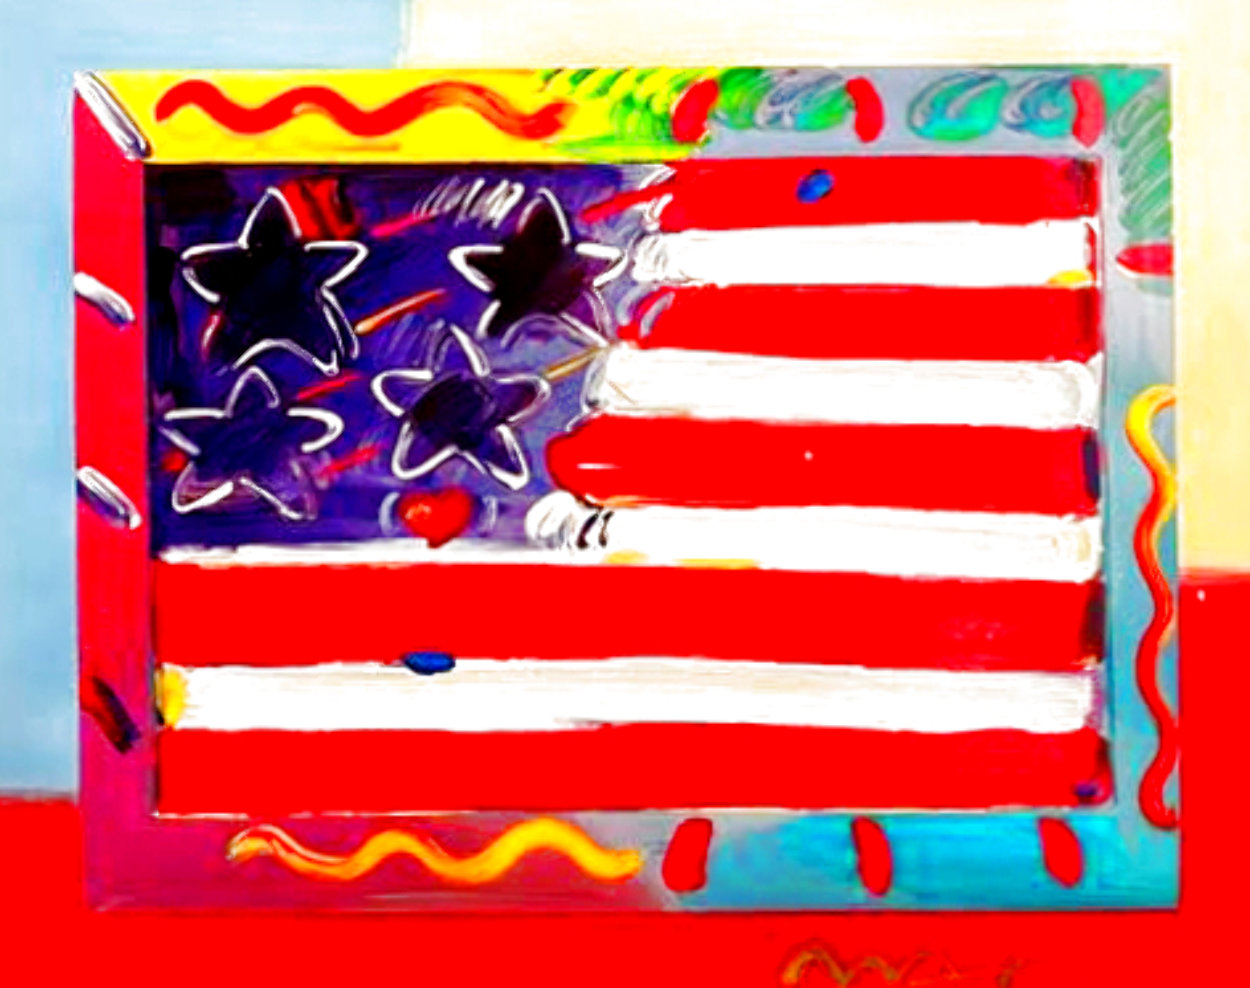 American Flag With Heart Unique 2014 39x35 Works on Paper (not prints) by Peter Max